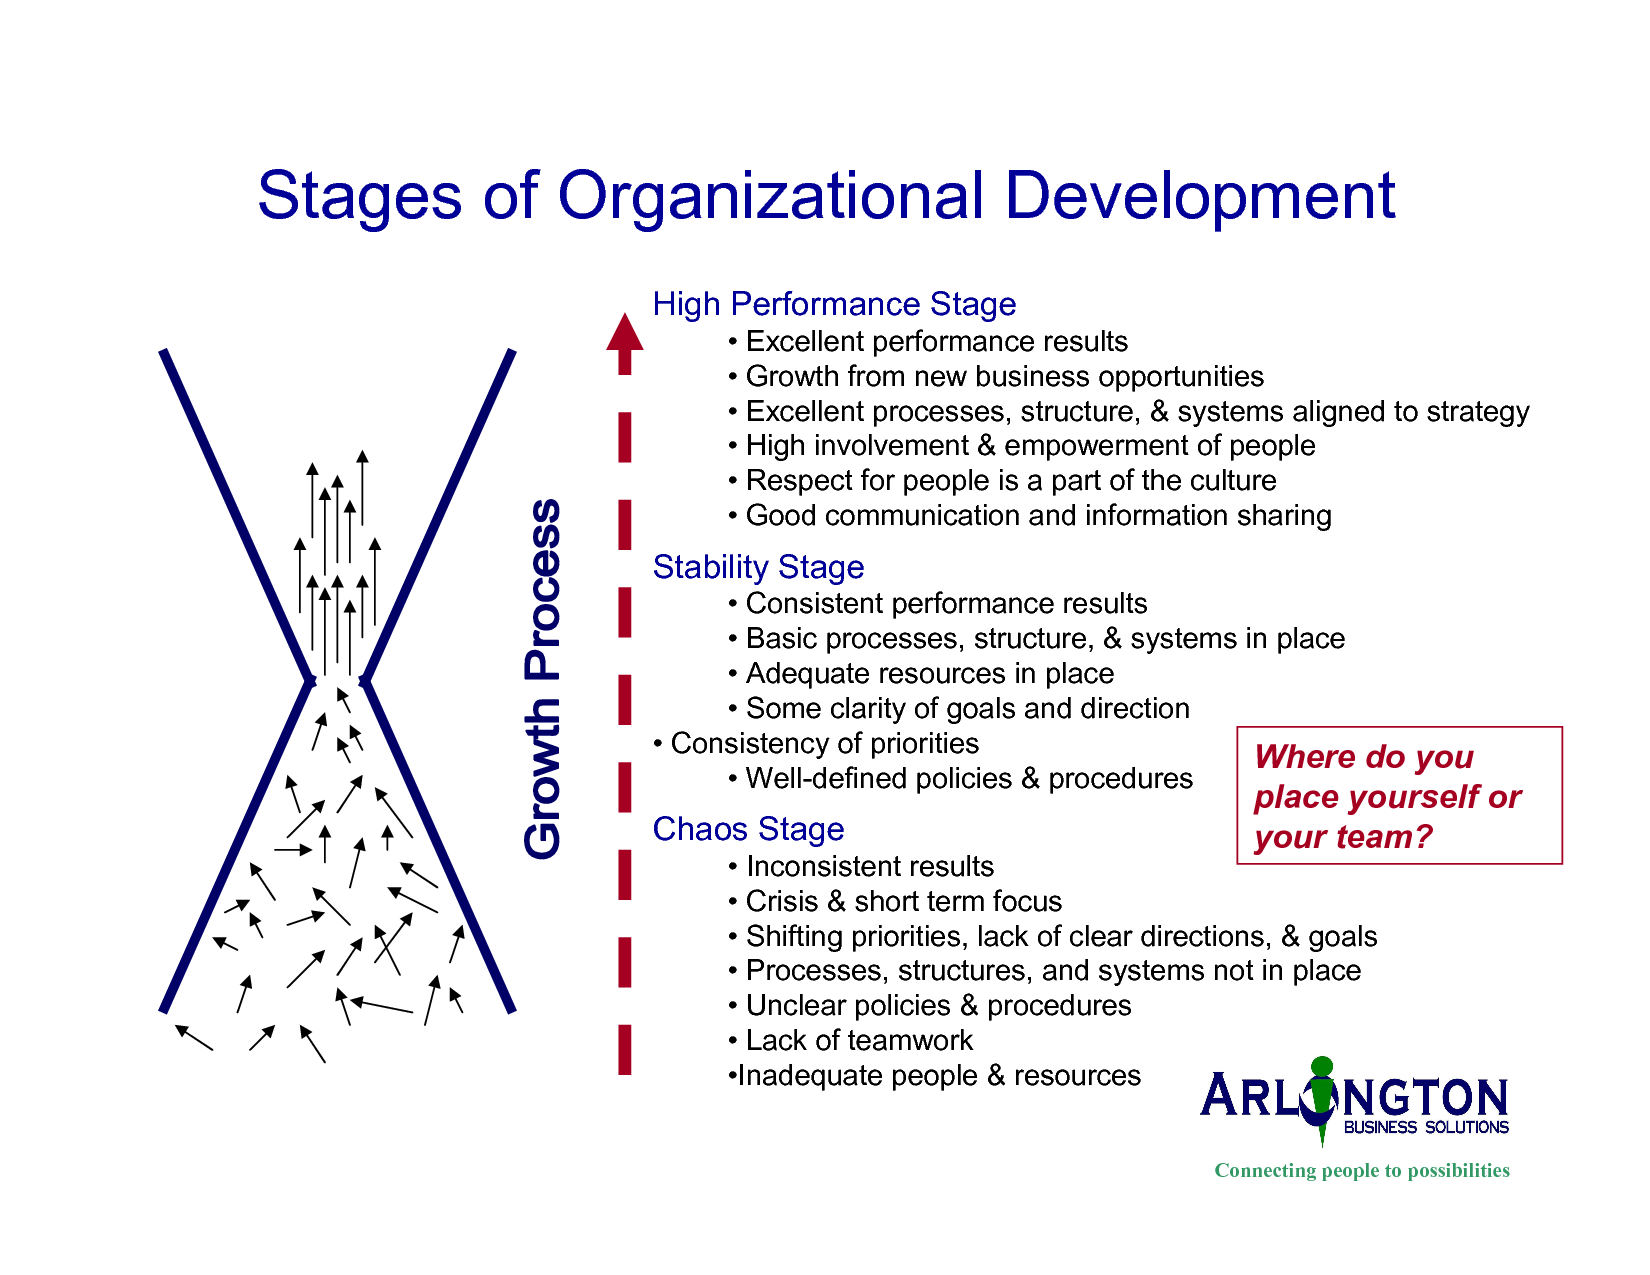 Challenges And Issues In Organizational Development Jobs b4d2ebbf28633530db07540c915f1e86